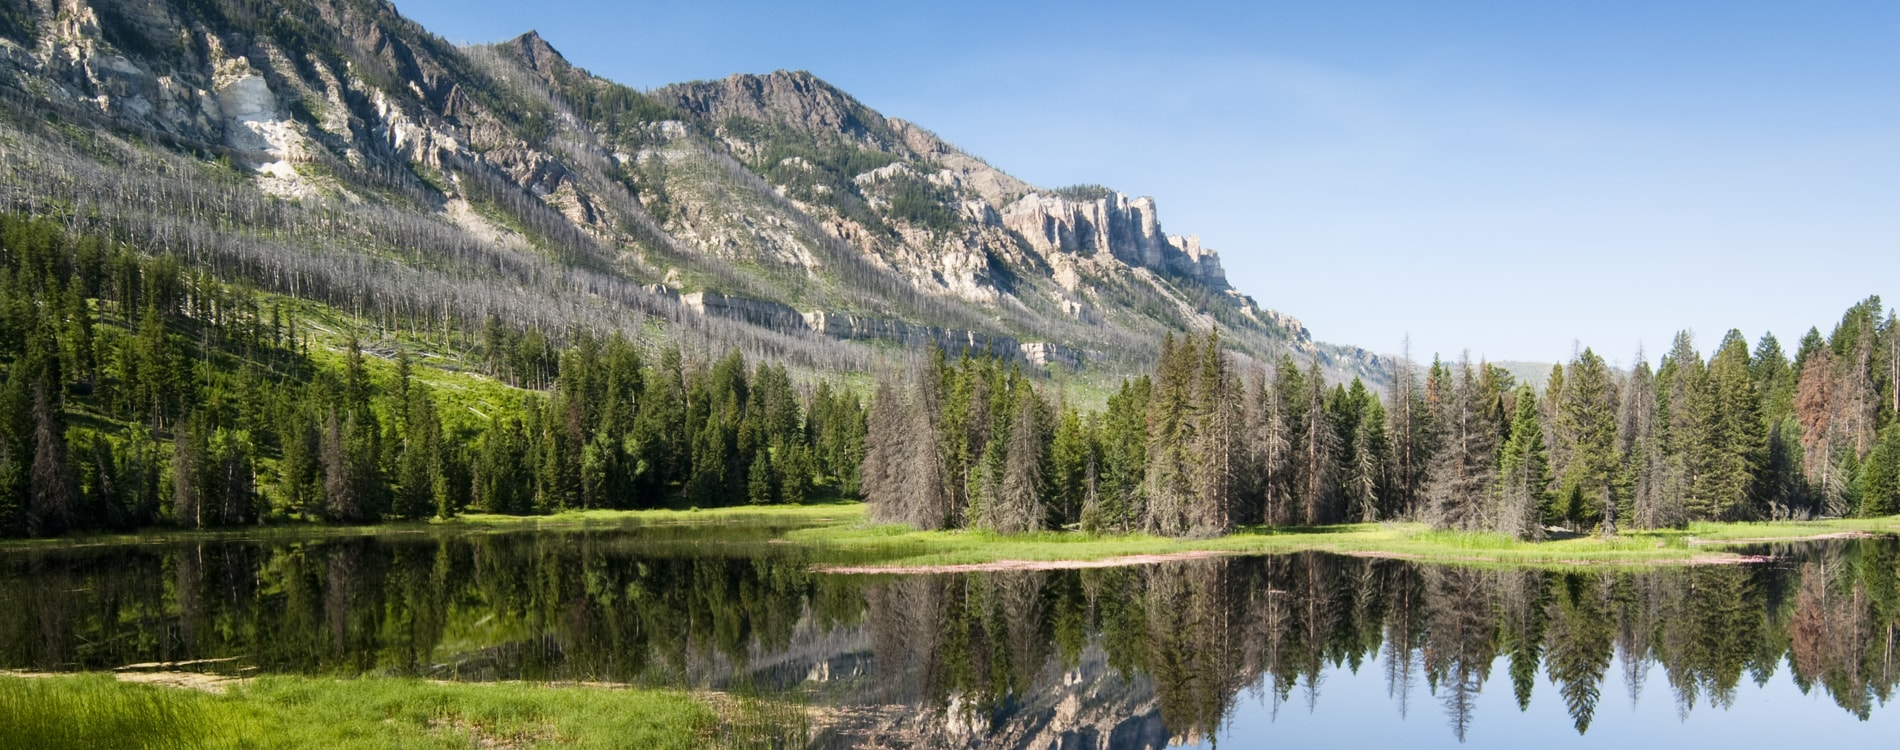 Chief Joseph Scenic Byway in the Absaroka Mountains